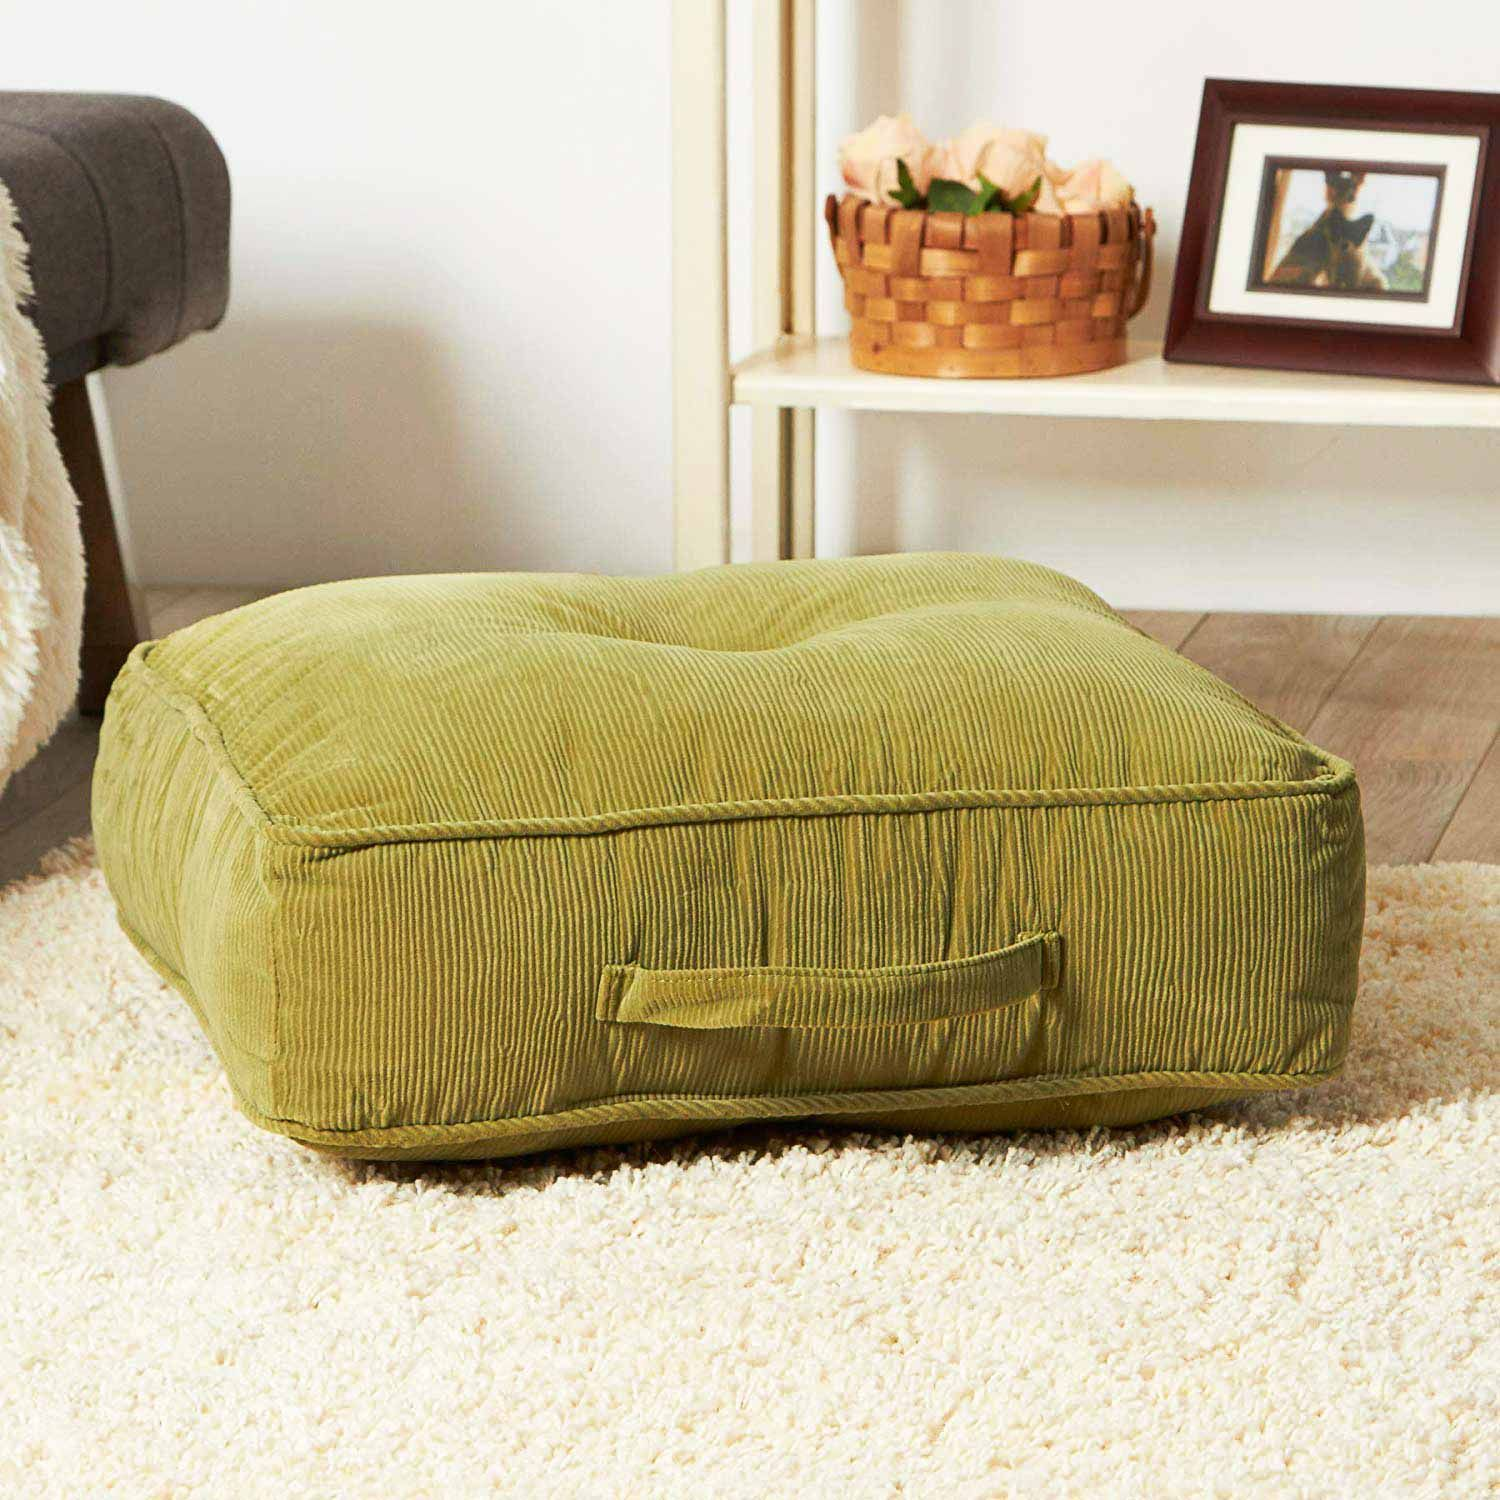 10 Best Floor Pillows For Kids And Adults Of 2019 Best Products